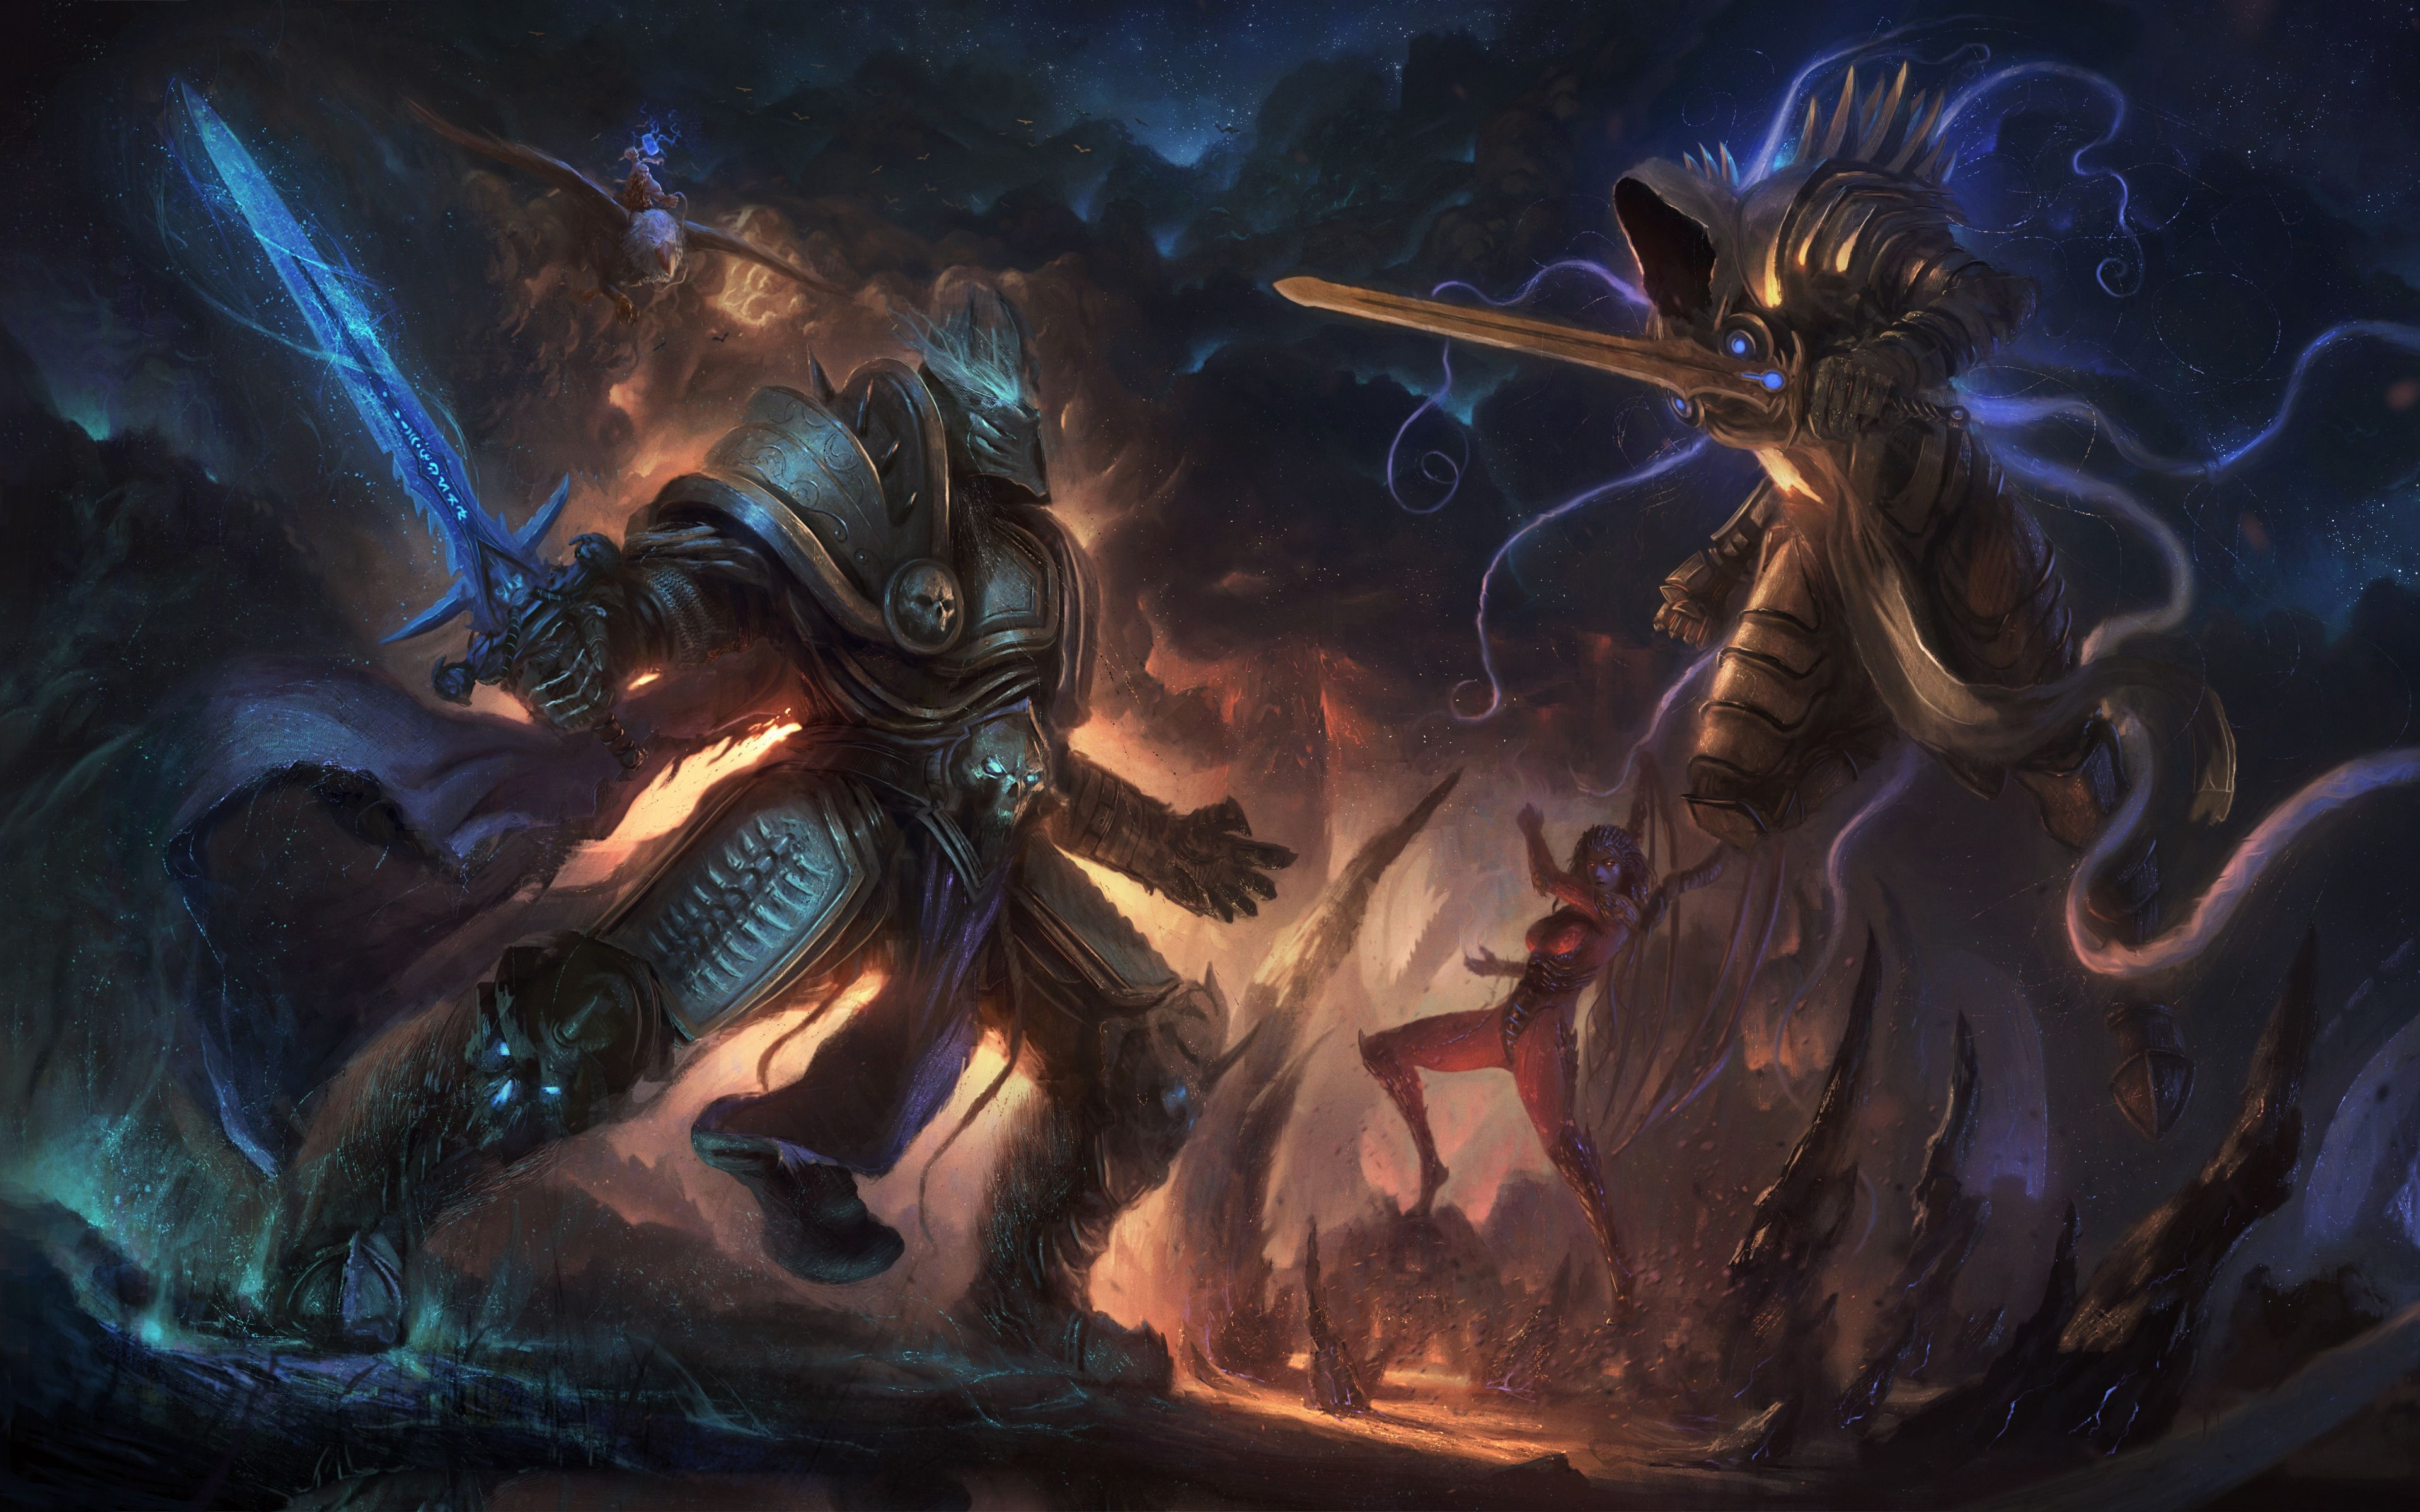 Related Image Heroes Of The Storm Art Contest Image Hero